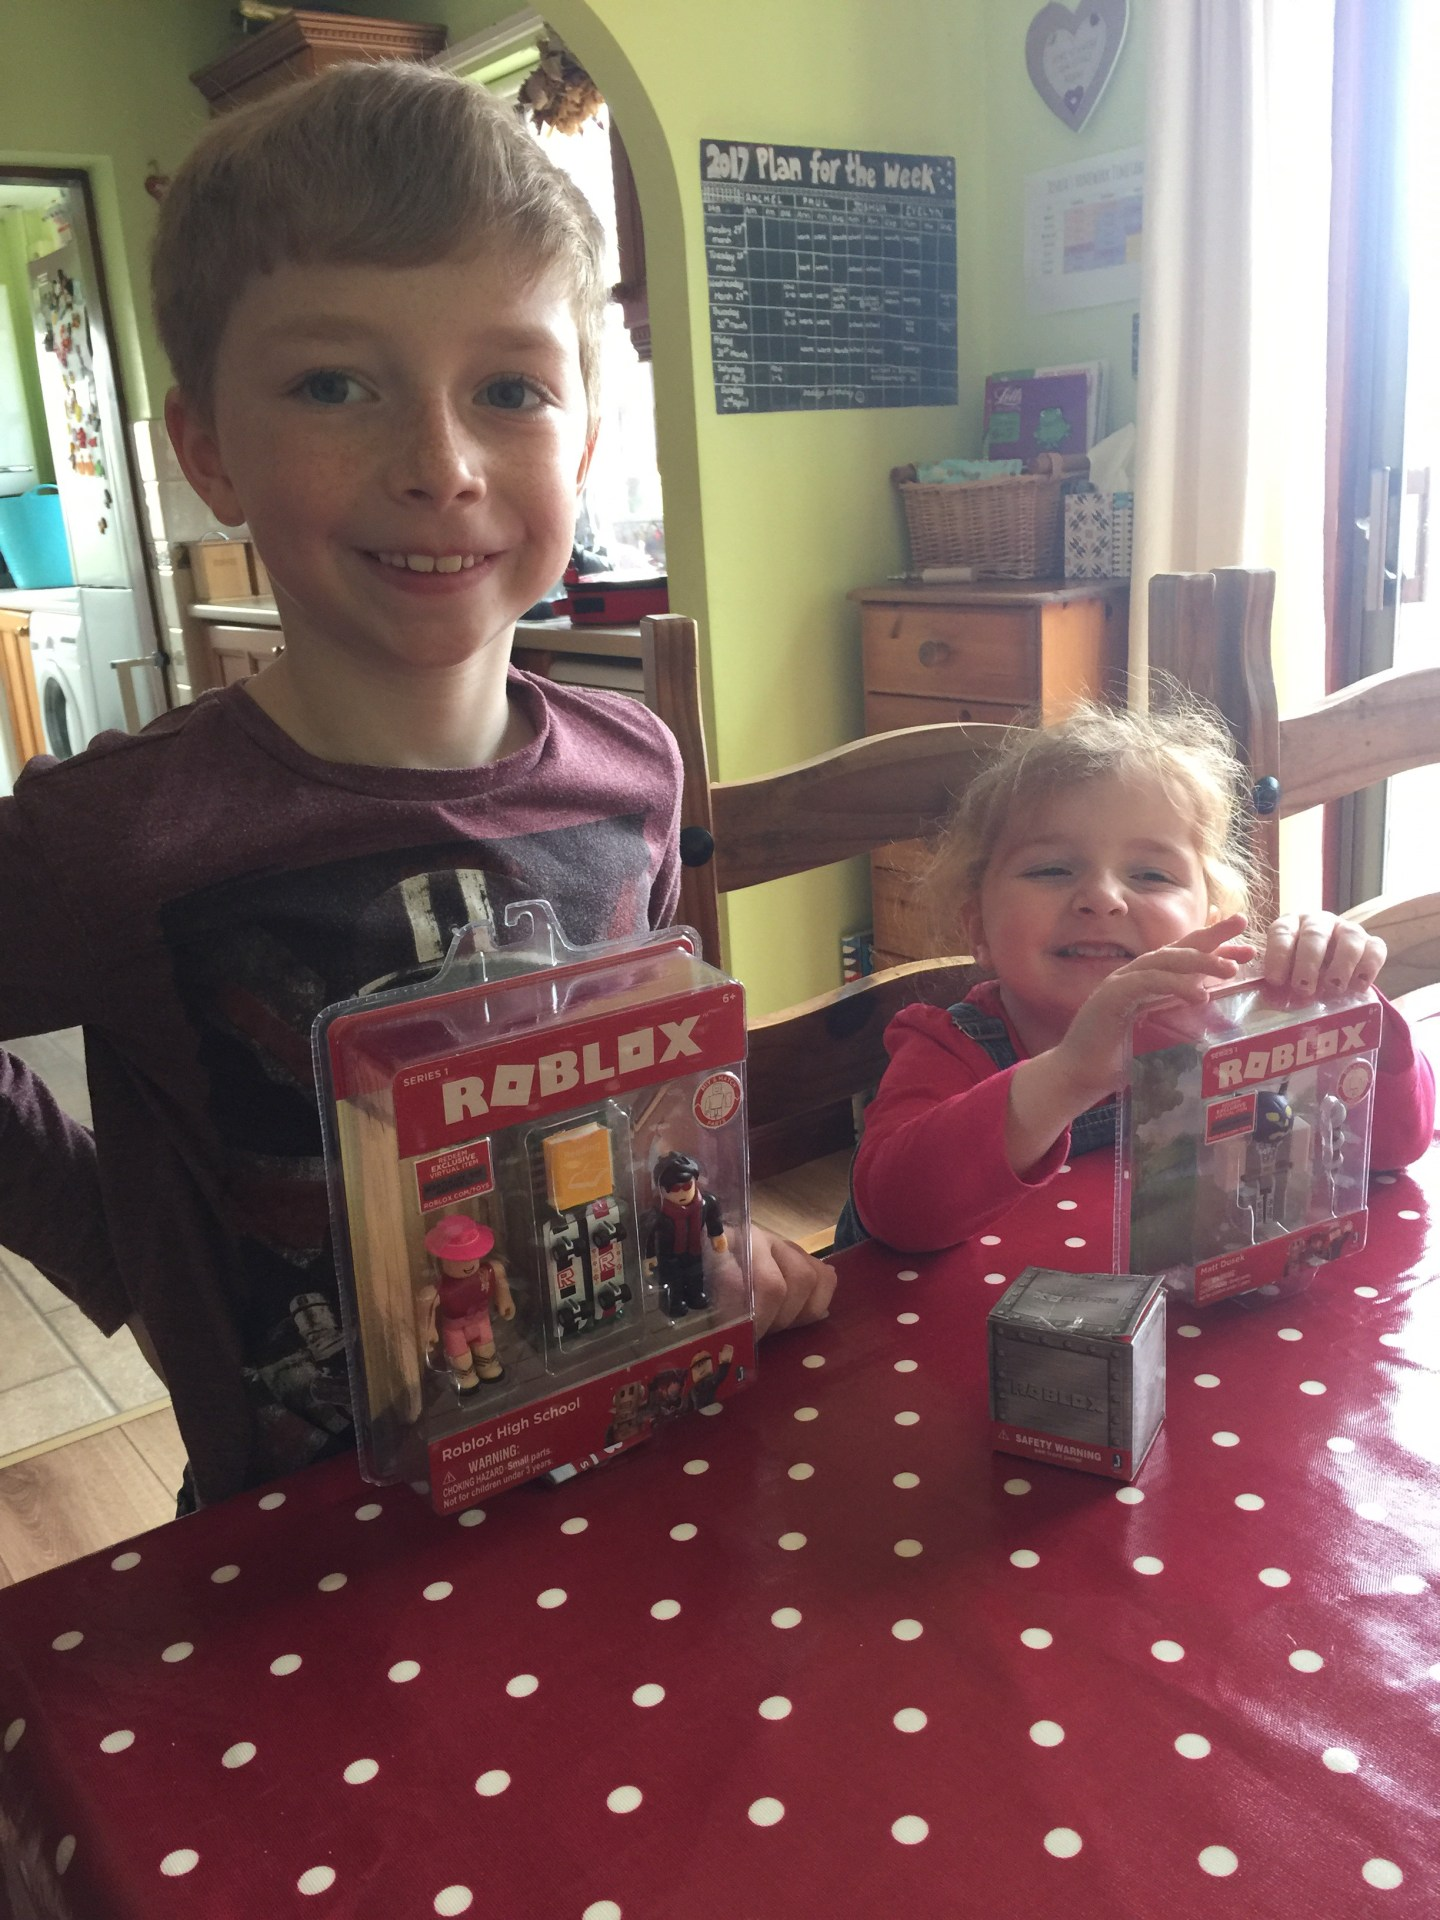 From Gaming To Reality With Roblox Figures & Playsets